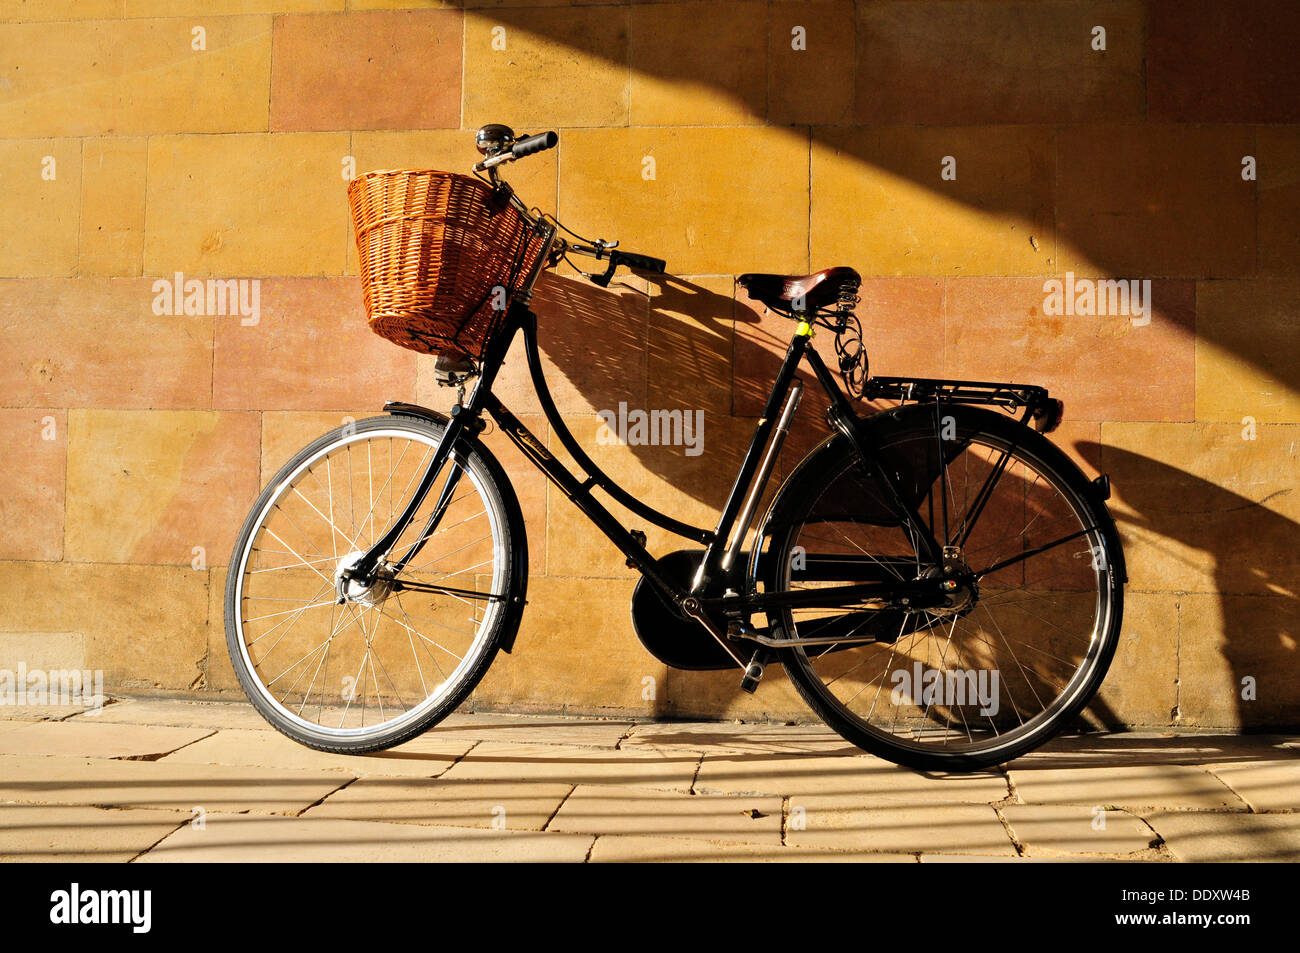 A parked bicycle against a wall, Clare College, Cambridge, UK - Stock Image